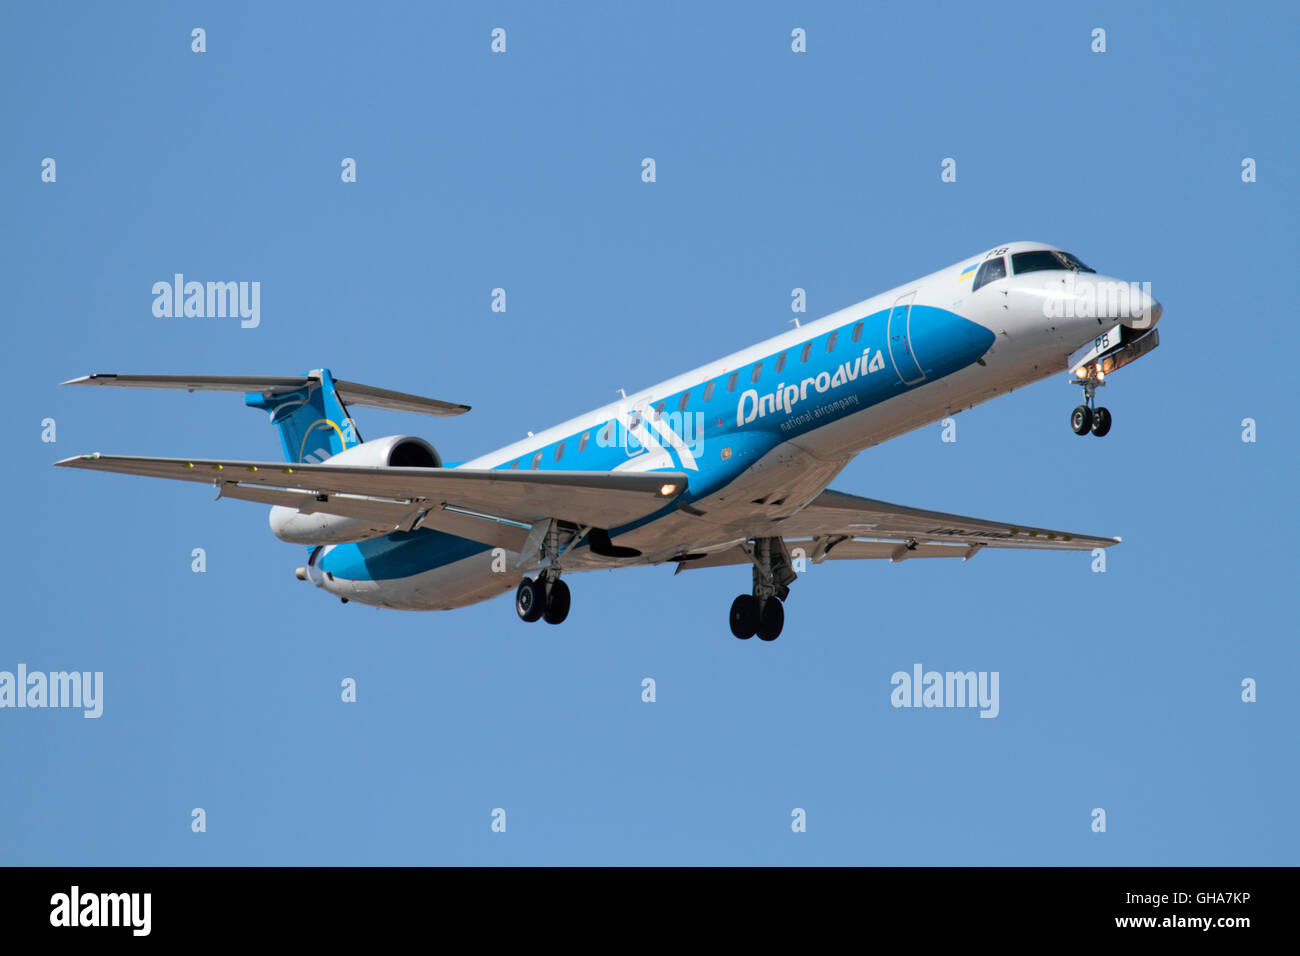 Dniproavia Embraer ERJ145 small regional airliner on approach - Stock Image